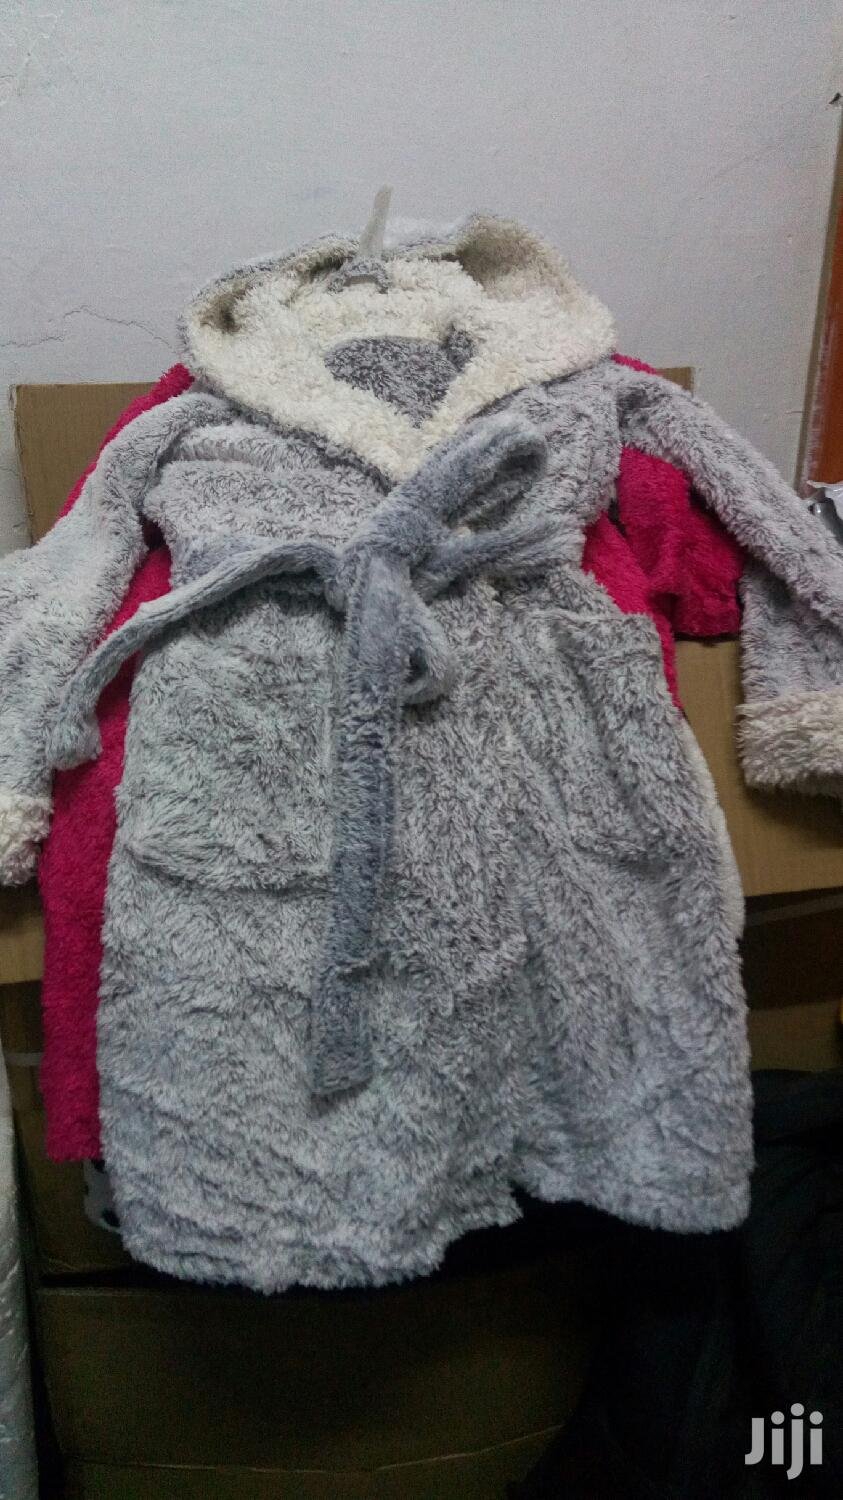 Bathing Robe/ Gown/Towel With Hood | Children's Clothing for sale in Nairobi Central, Nairobi, Kenya